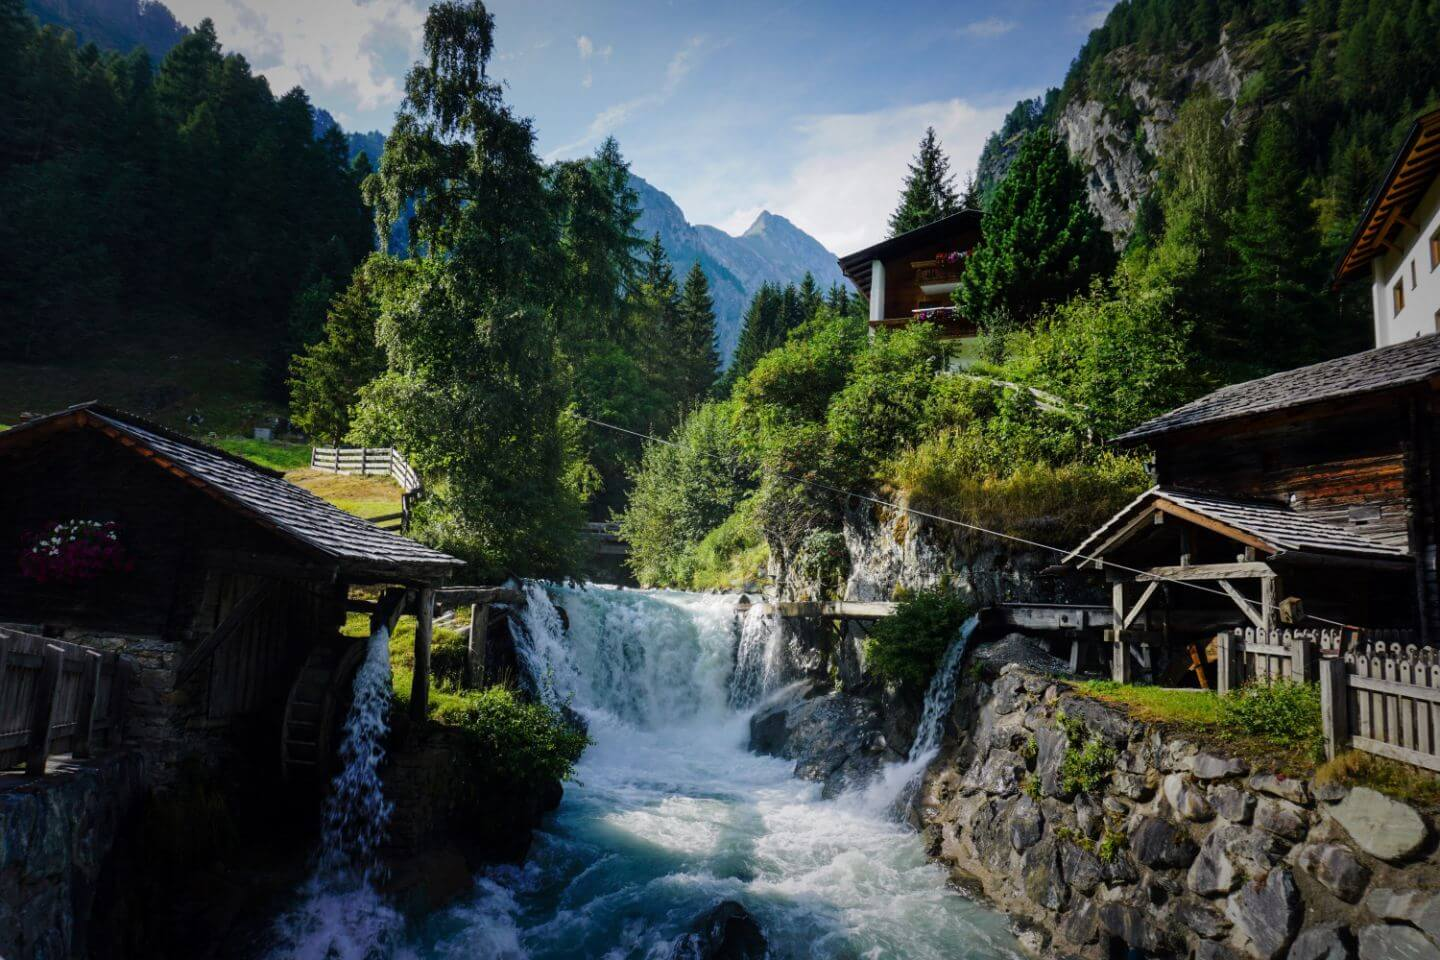 Hinterbichl, Virgental, Hohe Tauern, Austria - Best Places to Visit in Austria